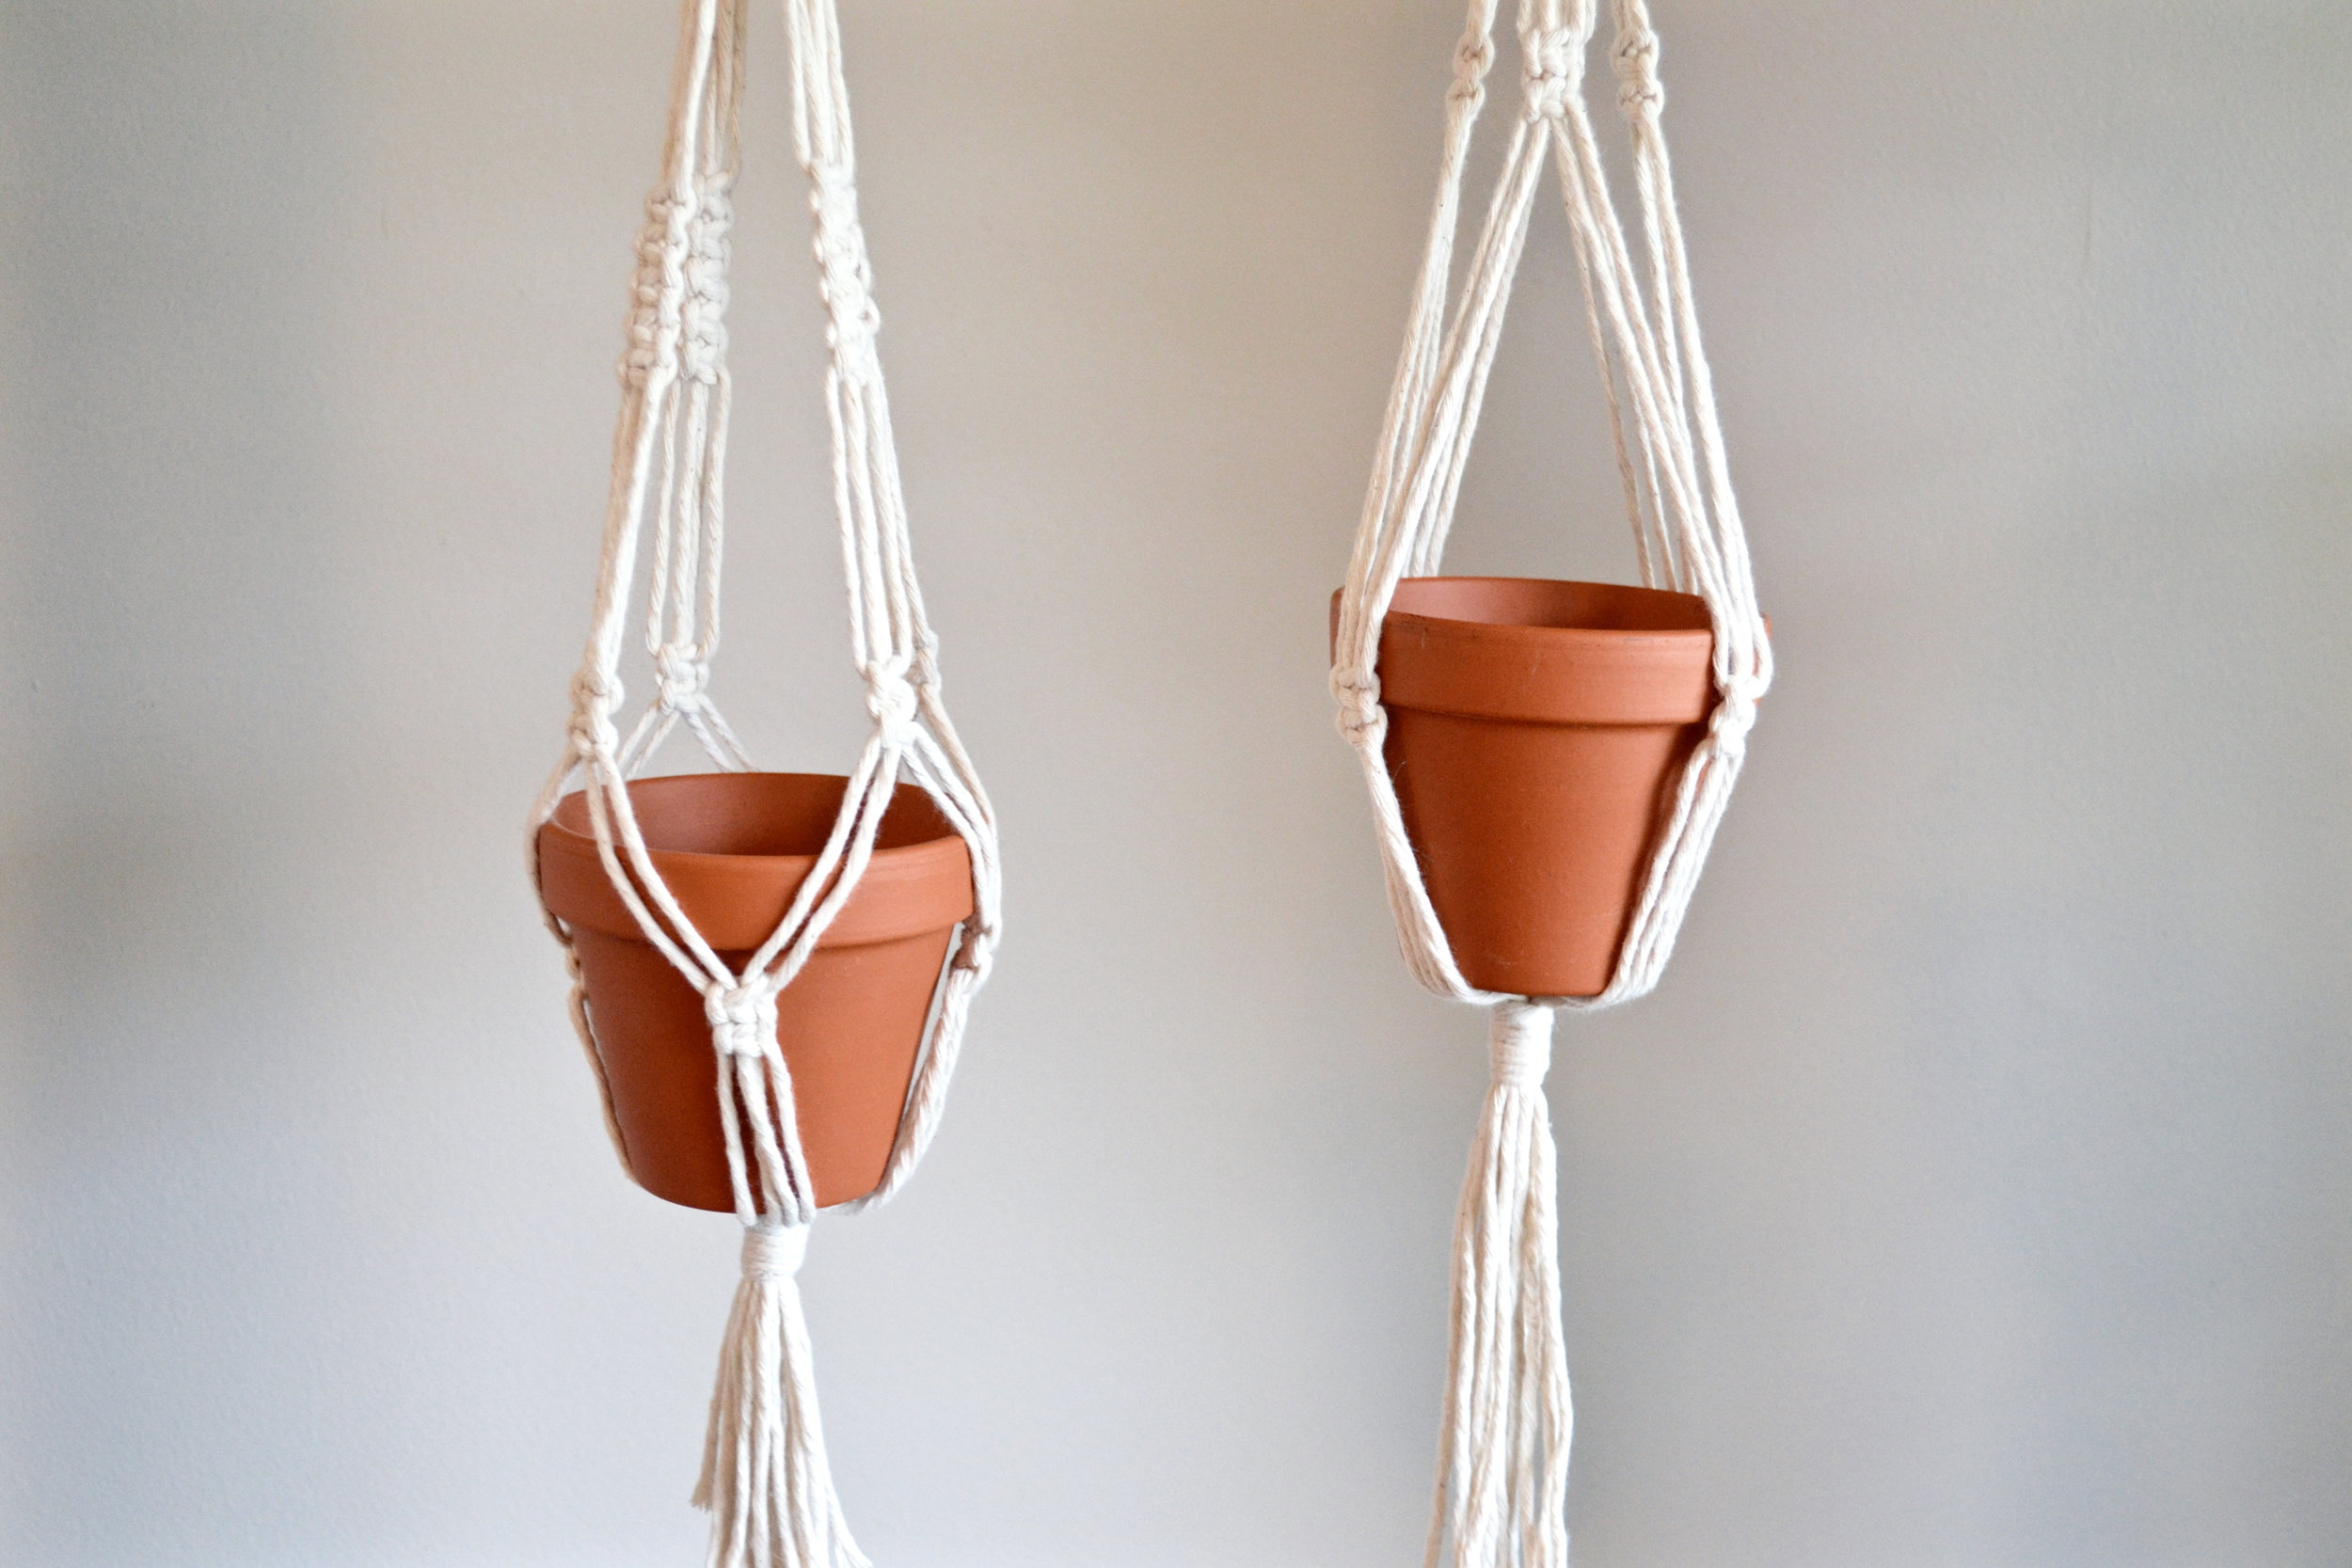 Small minimalist plant hangers - 14 inches long - available for purchase! $30 each (made to order)